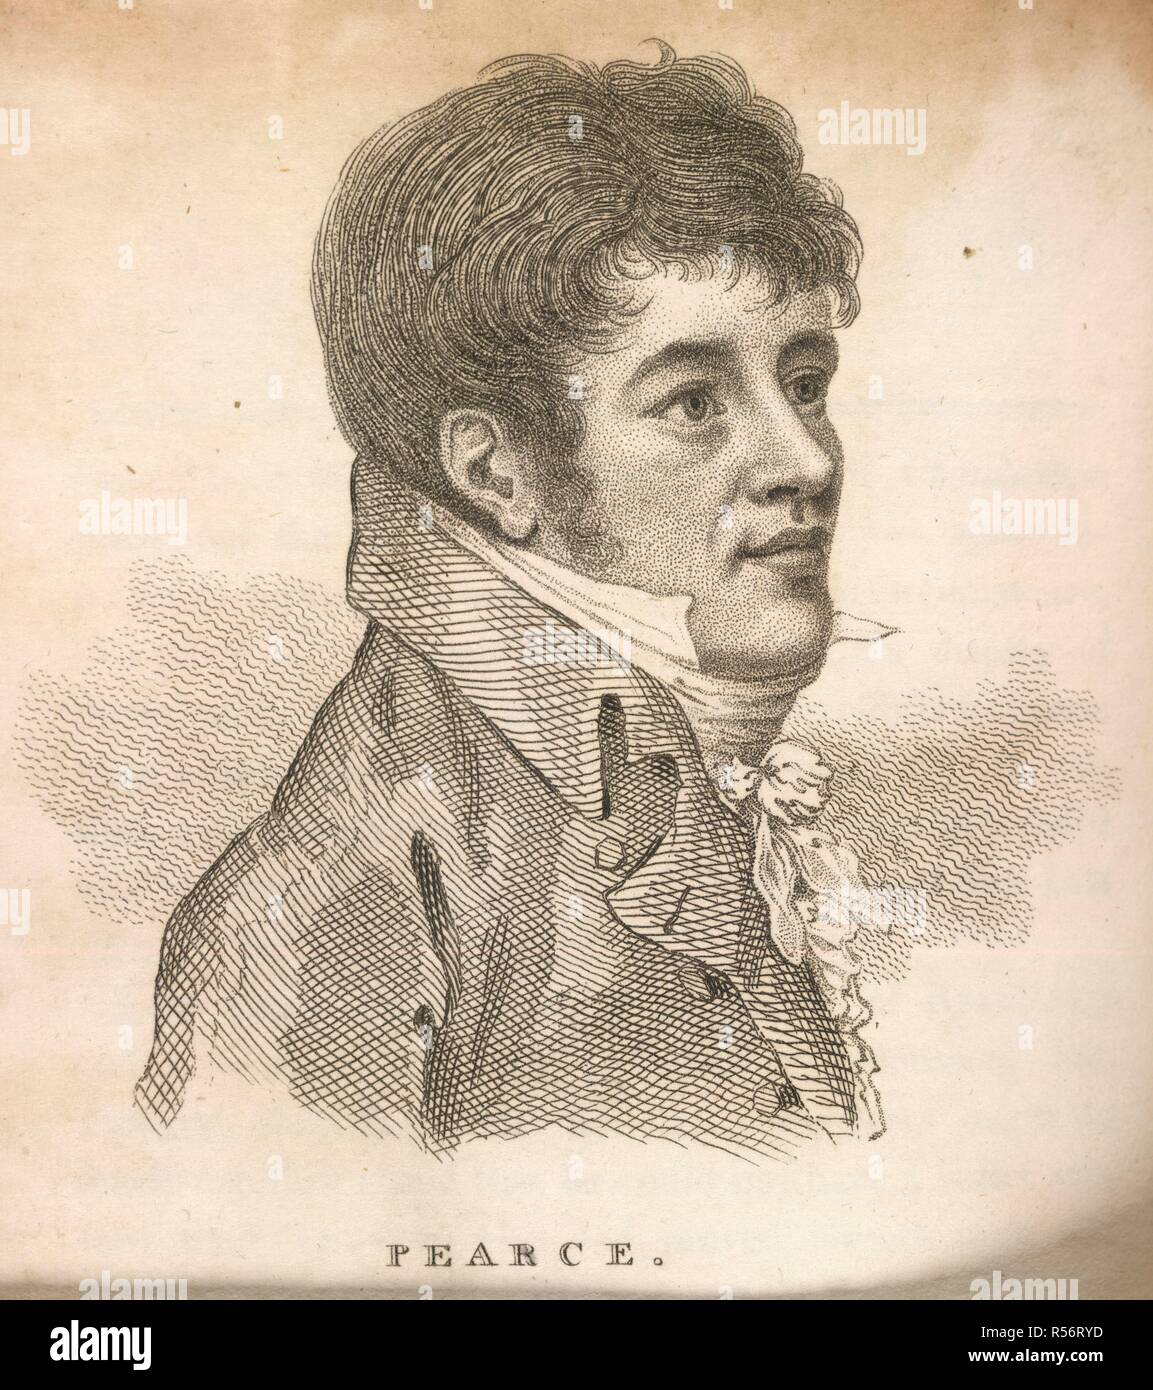 Hen Pearce. Boxiana; or Sketches of ancient and modern pugilis. G. Smeeton: London, 1812. Hen Pearce (1777-1809). Pugilist/Boxer. Known as 'the Game chicken'. A popular fighter, never beaten in compeition. Image taken from Boxiana; or Sketches of ancient and modern pugilism; from the days of the reowned Broughton and Slack, to the heroes of the present milling æra! By One of the Fancy [i.e. Pierce Egan]. [With plates.] . Originally published/produced in G. Smeeton: London, 1812. Source: 7920.g.30, opposite 145. Language: English. Stock Photo